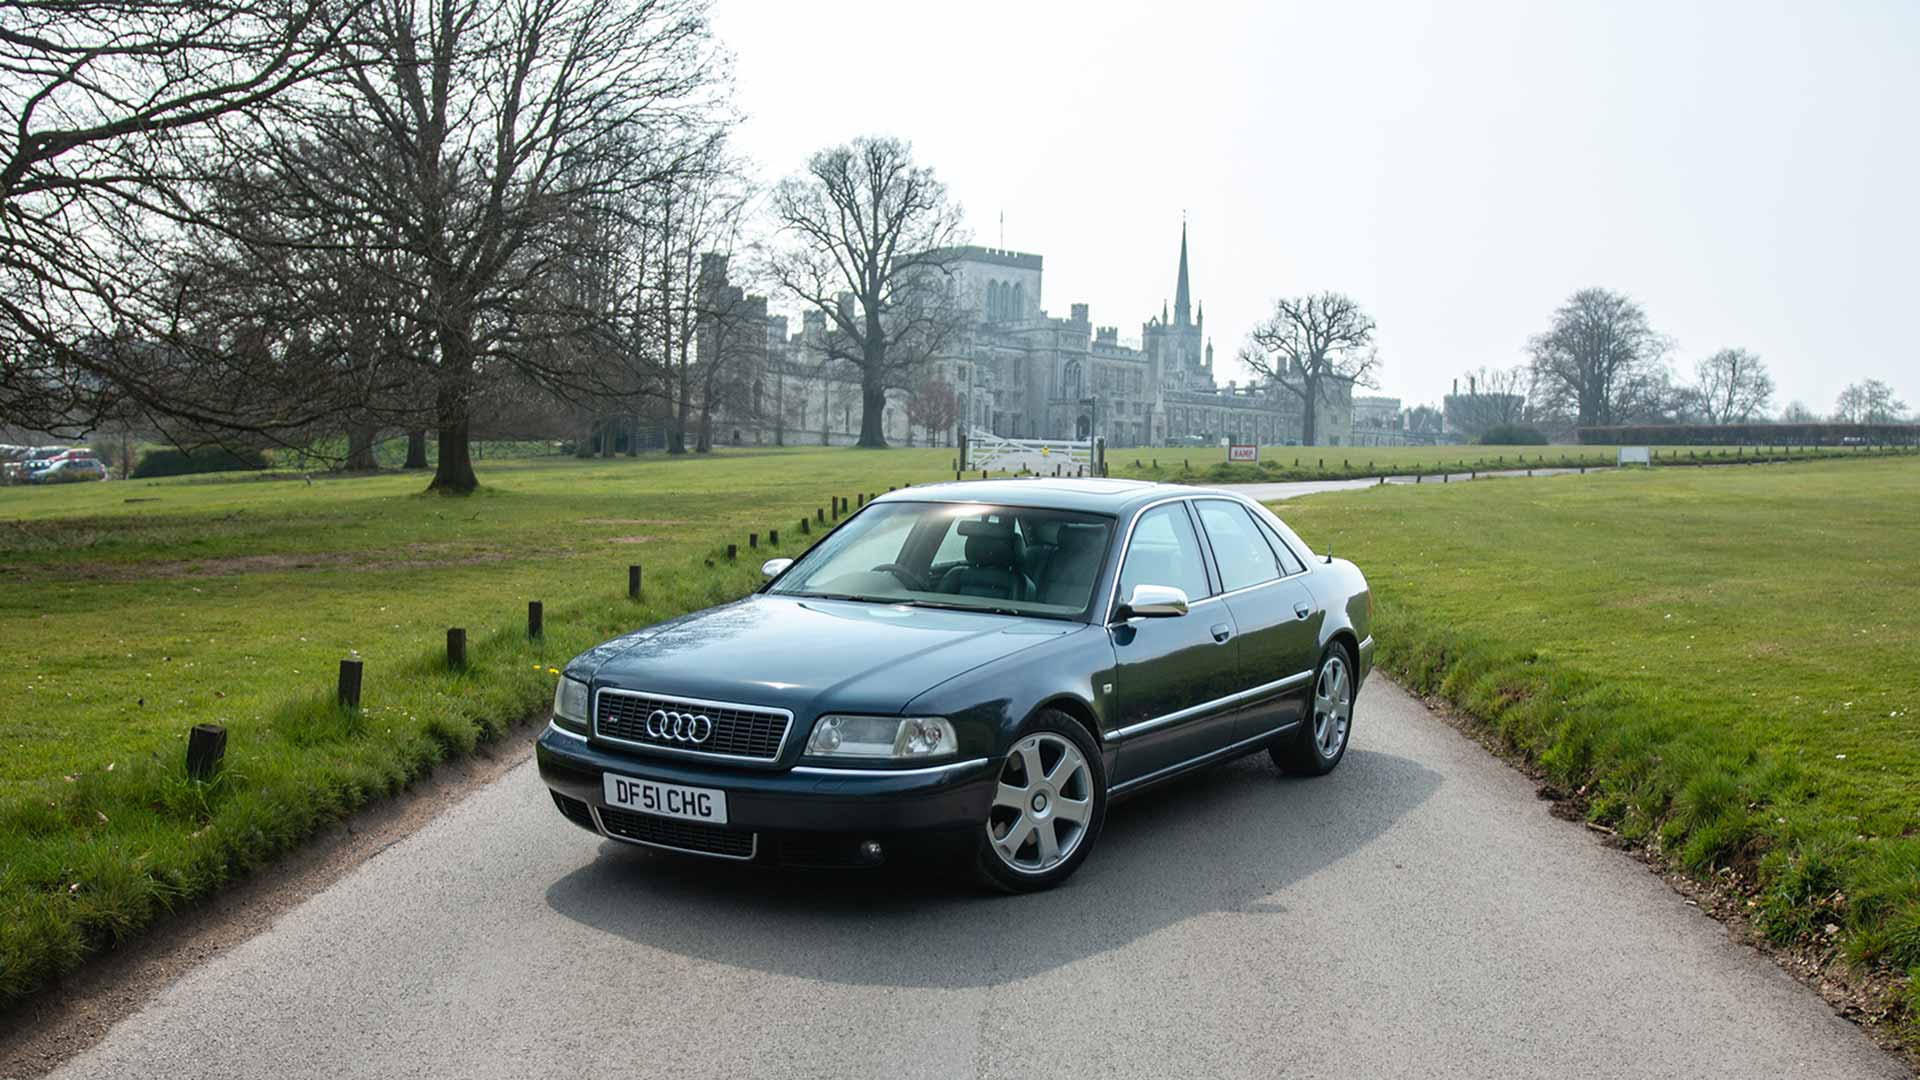 Audi S8 long-term review